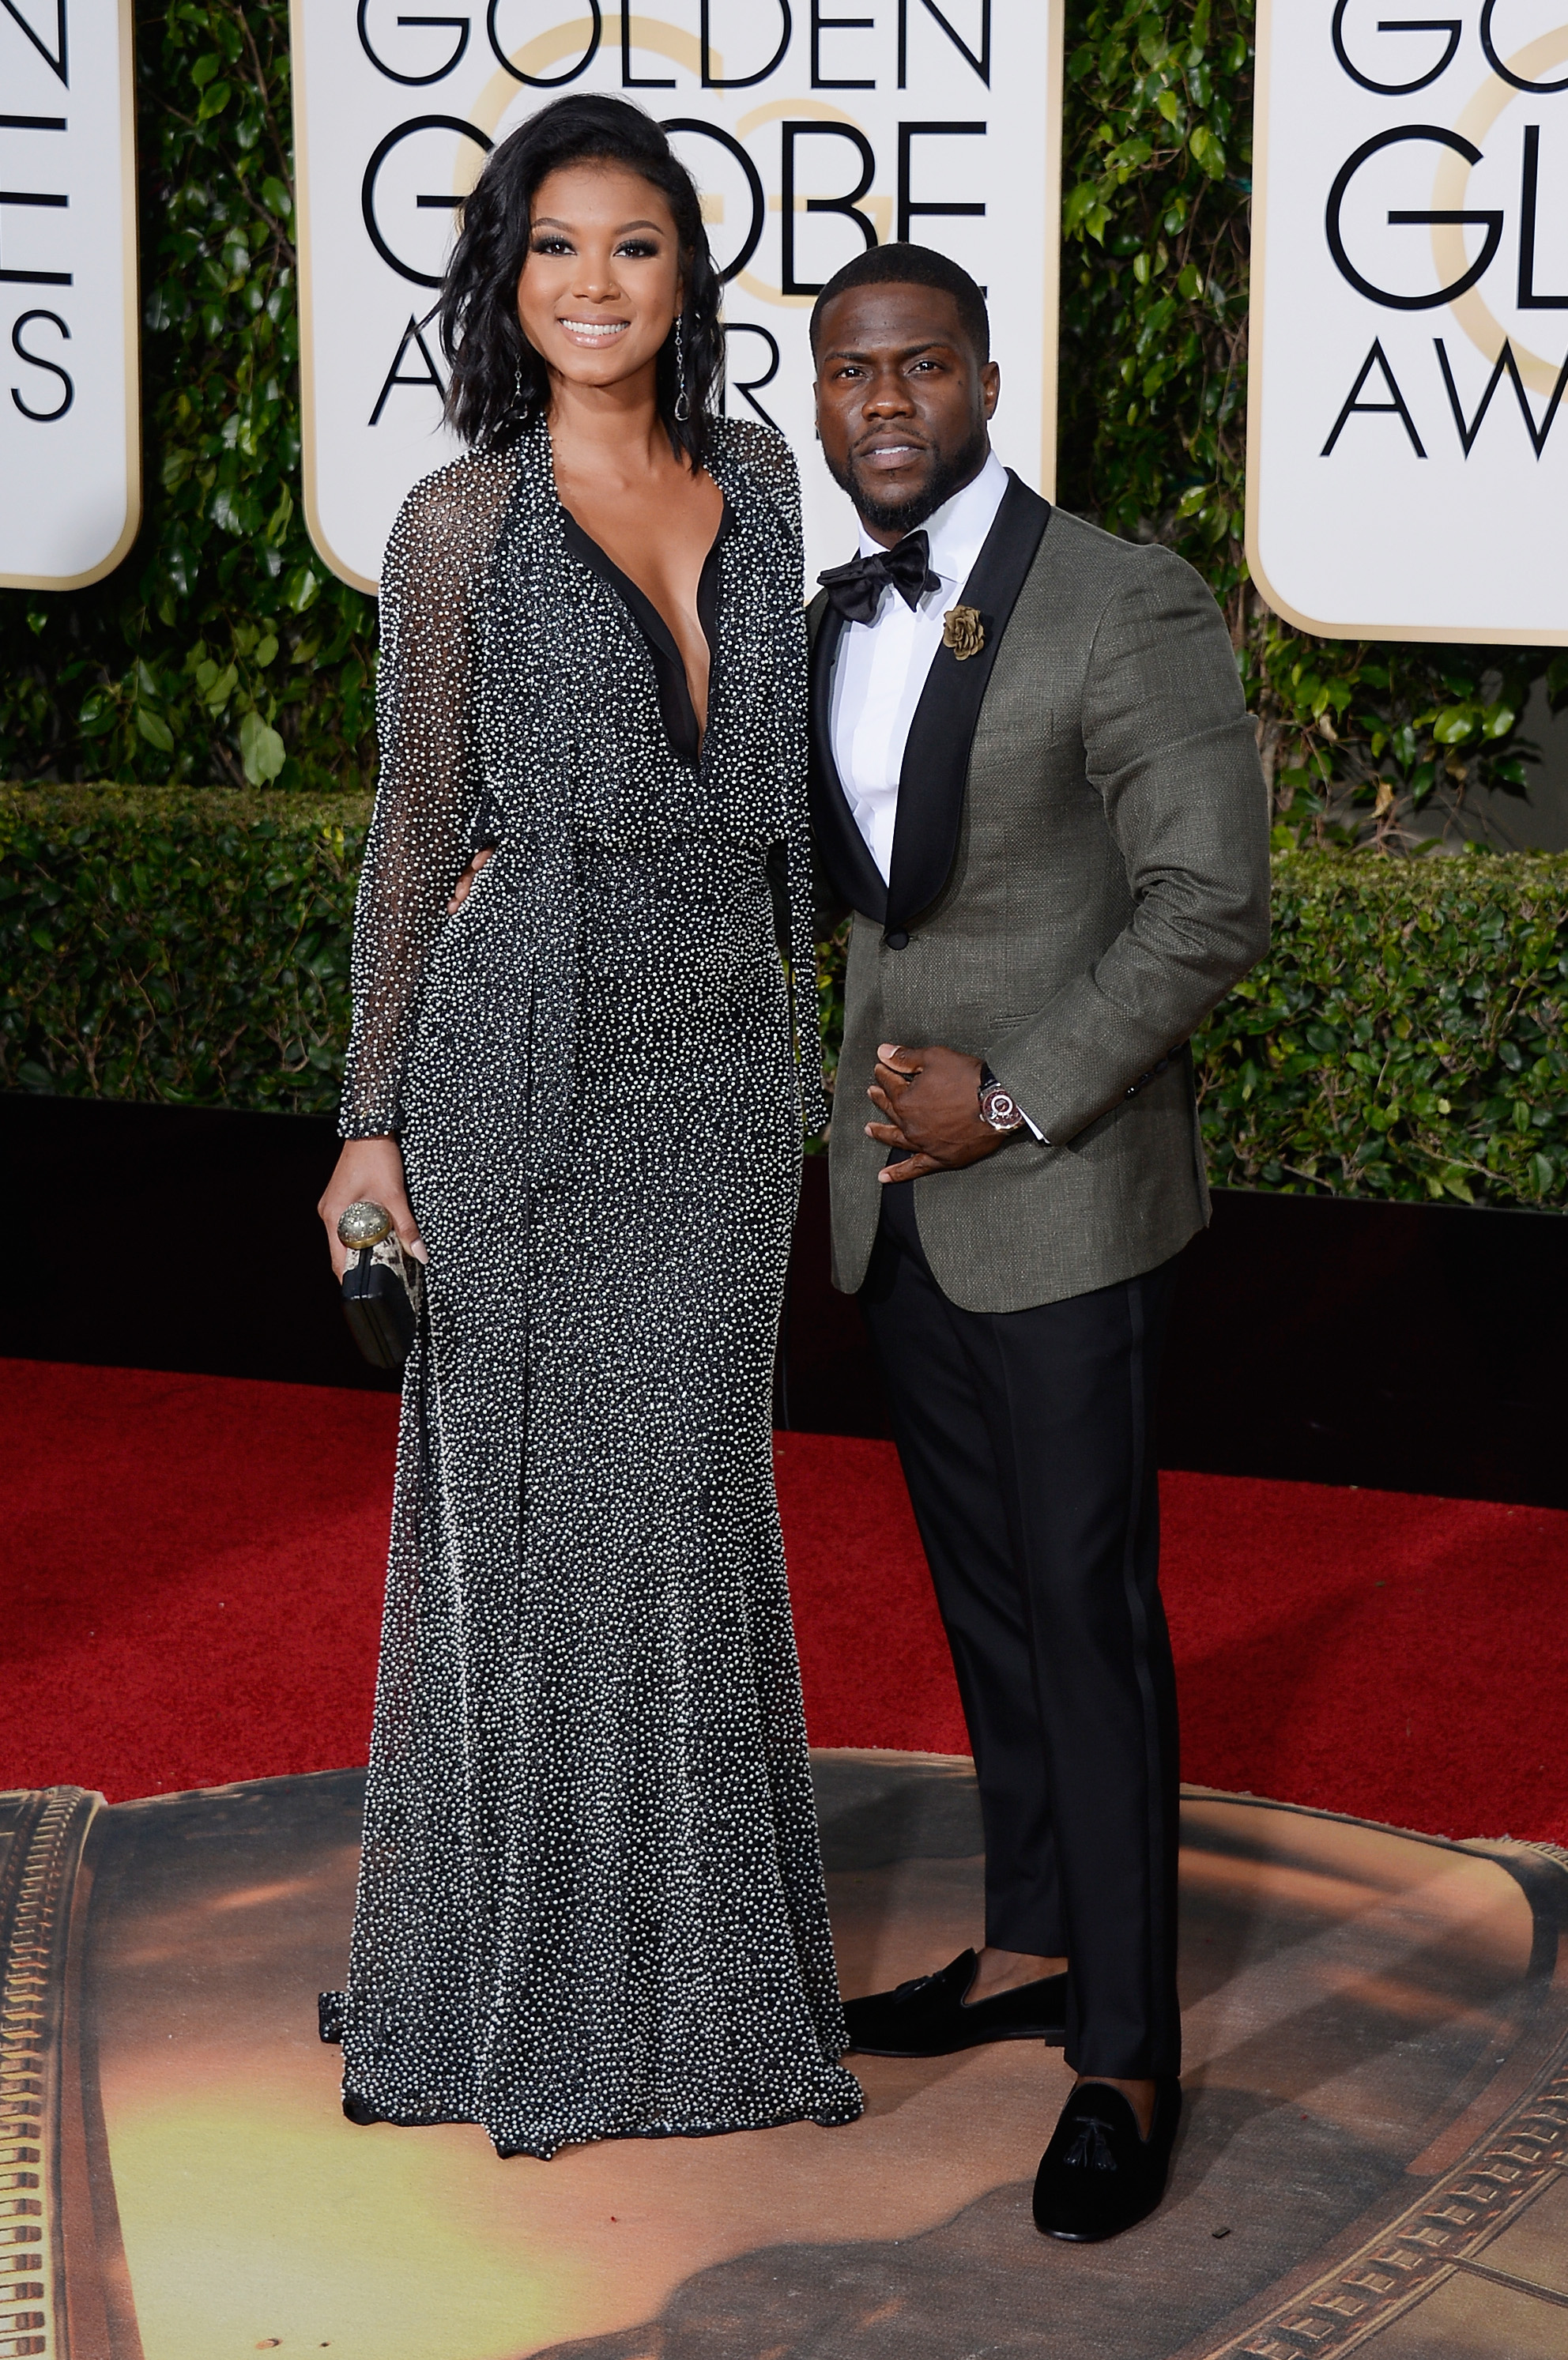 Eniko Parrish and Kevin Hart arrive to the 73rd Annual Golden Globe Awards on Jan. 10, 2016 in Beverly Hills.